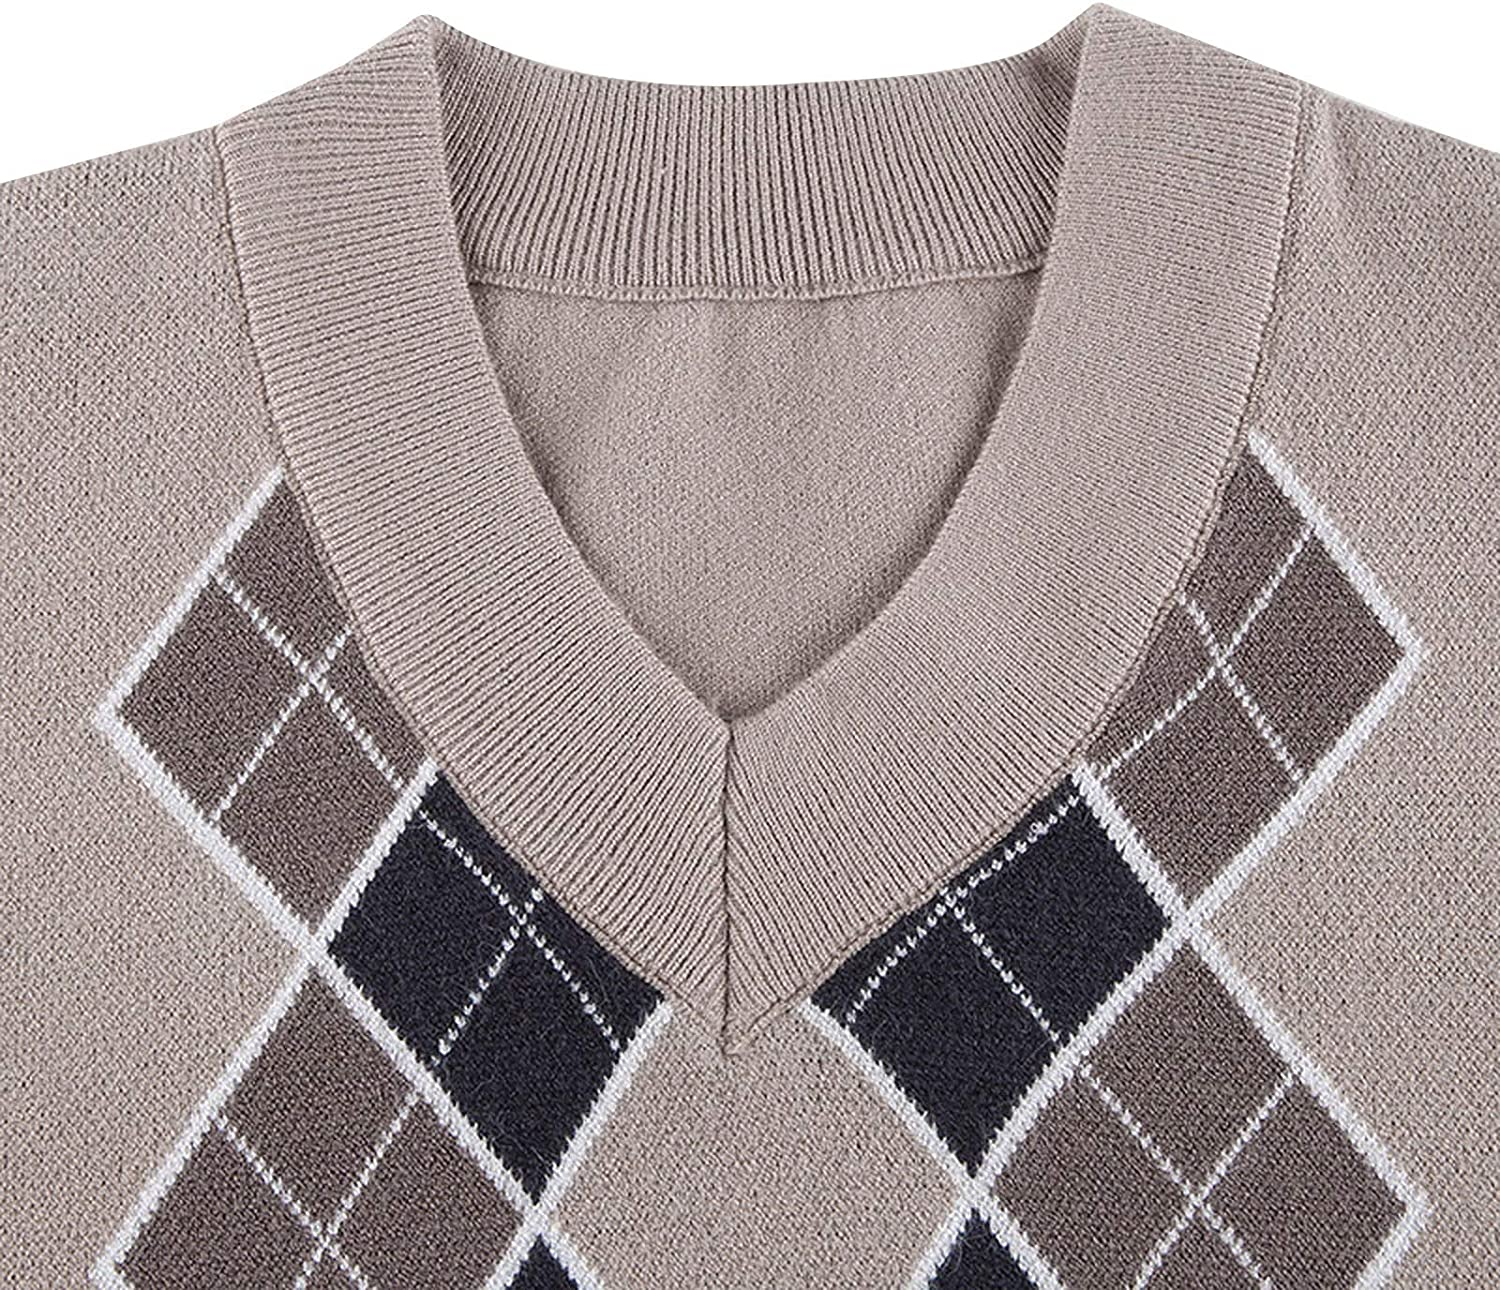 Meihuida Women Y2k Sweater Argyle Sweater Pullover Long Sleeve Flower Button Knitted Cropped Cardigan Sweaters